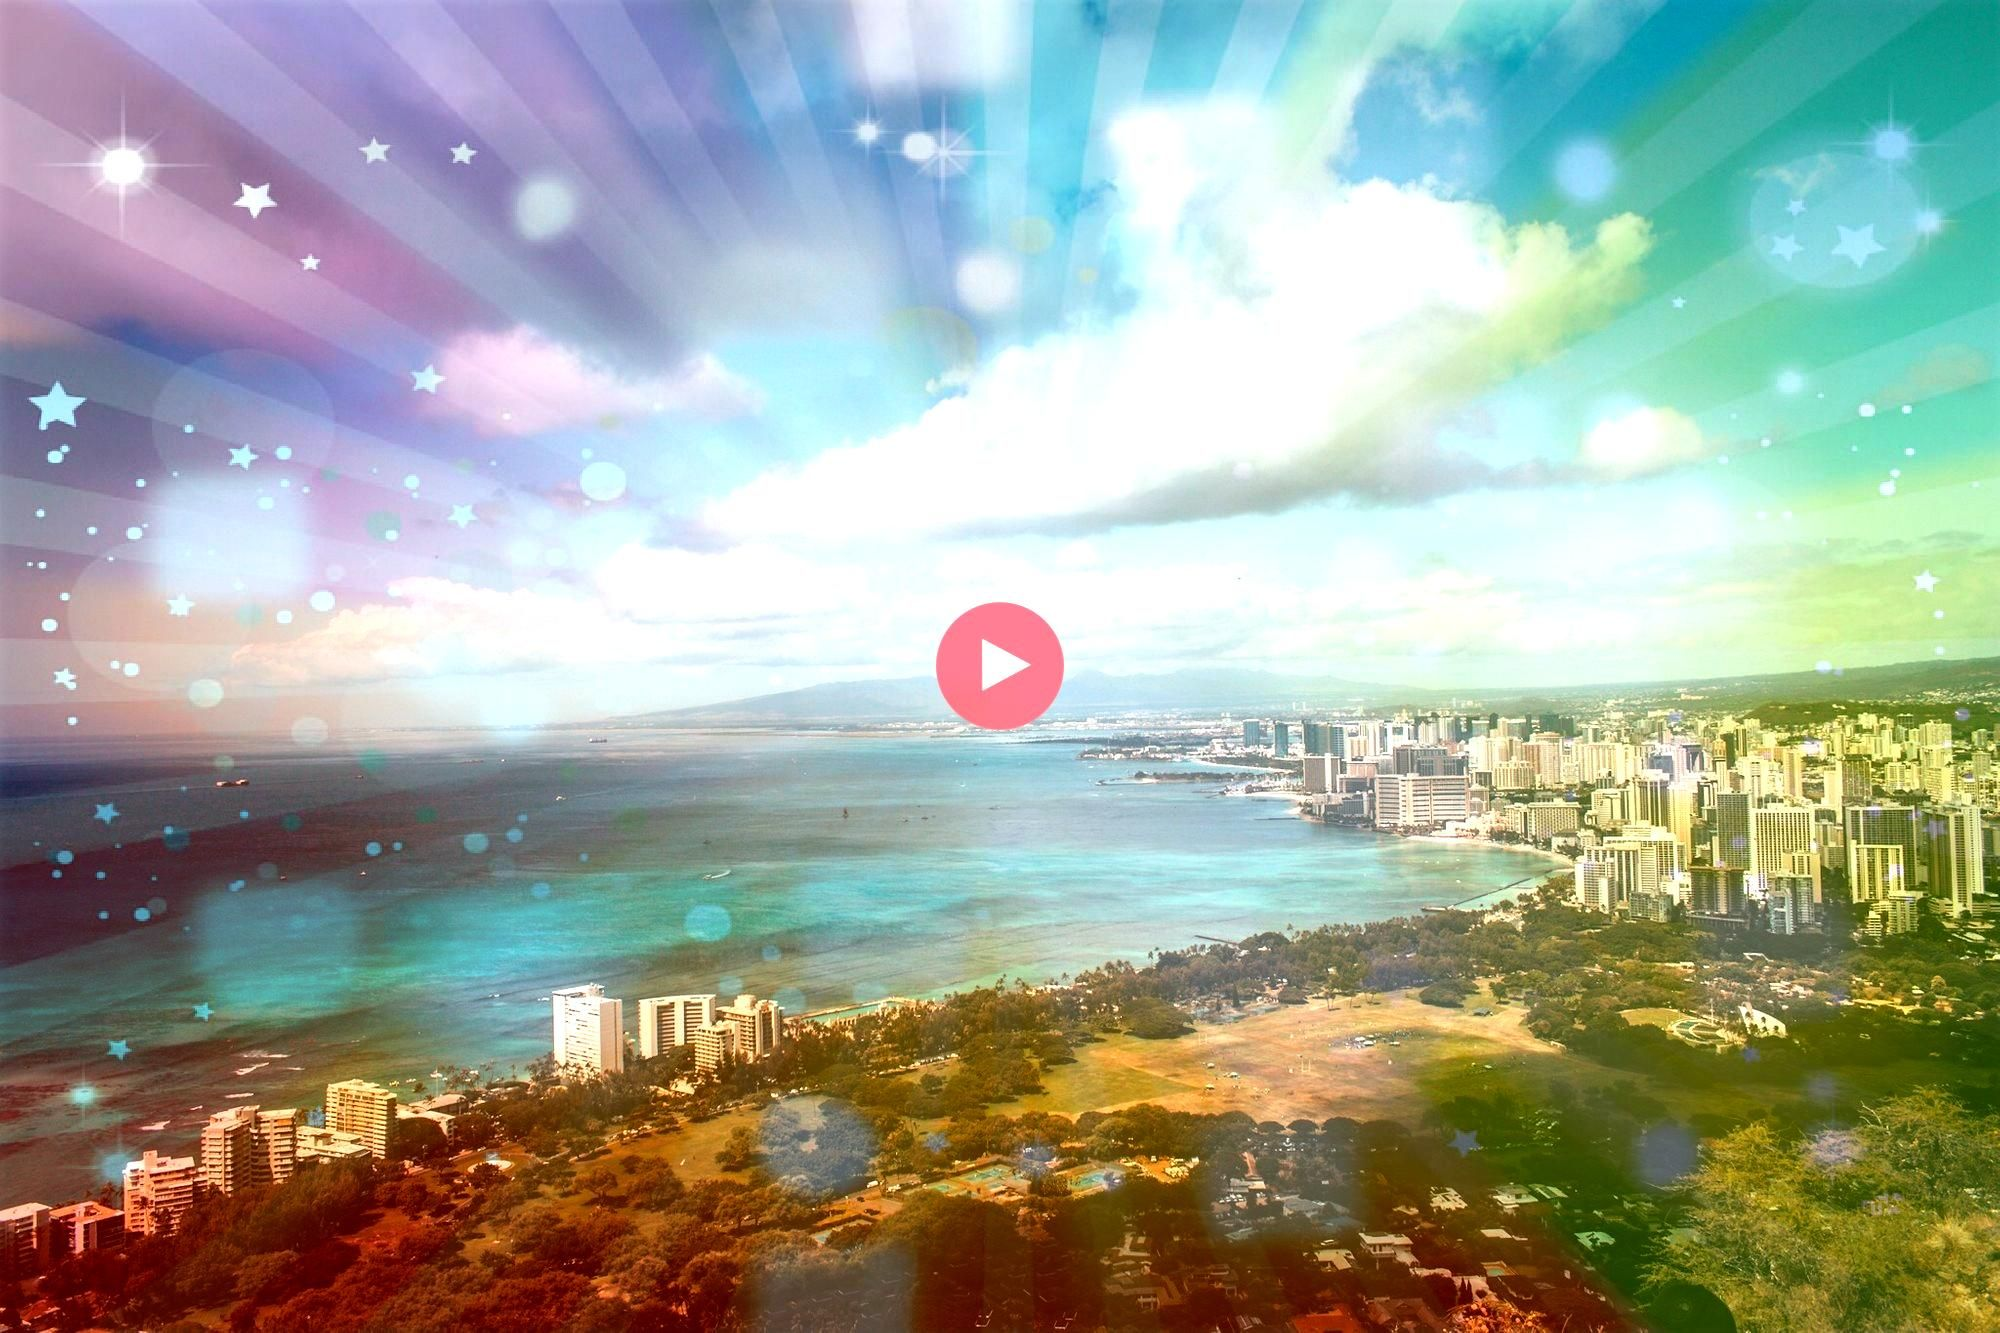 Honolulu   Get out of the city and climb the hills The stories of our lives should not be spent in tall buildings but rather on mountaintops beaches and adventures around...